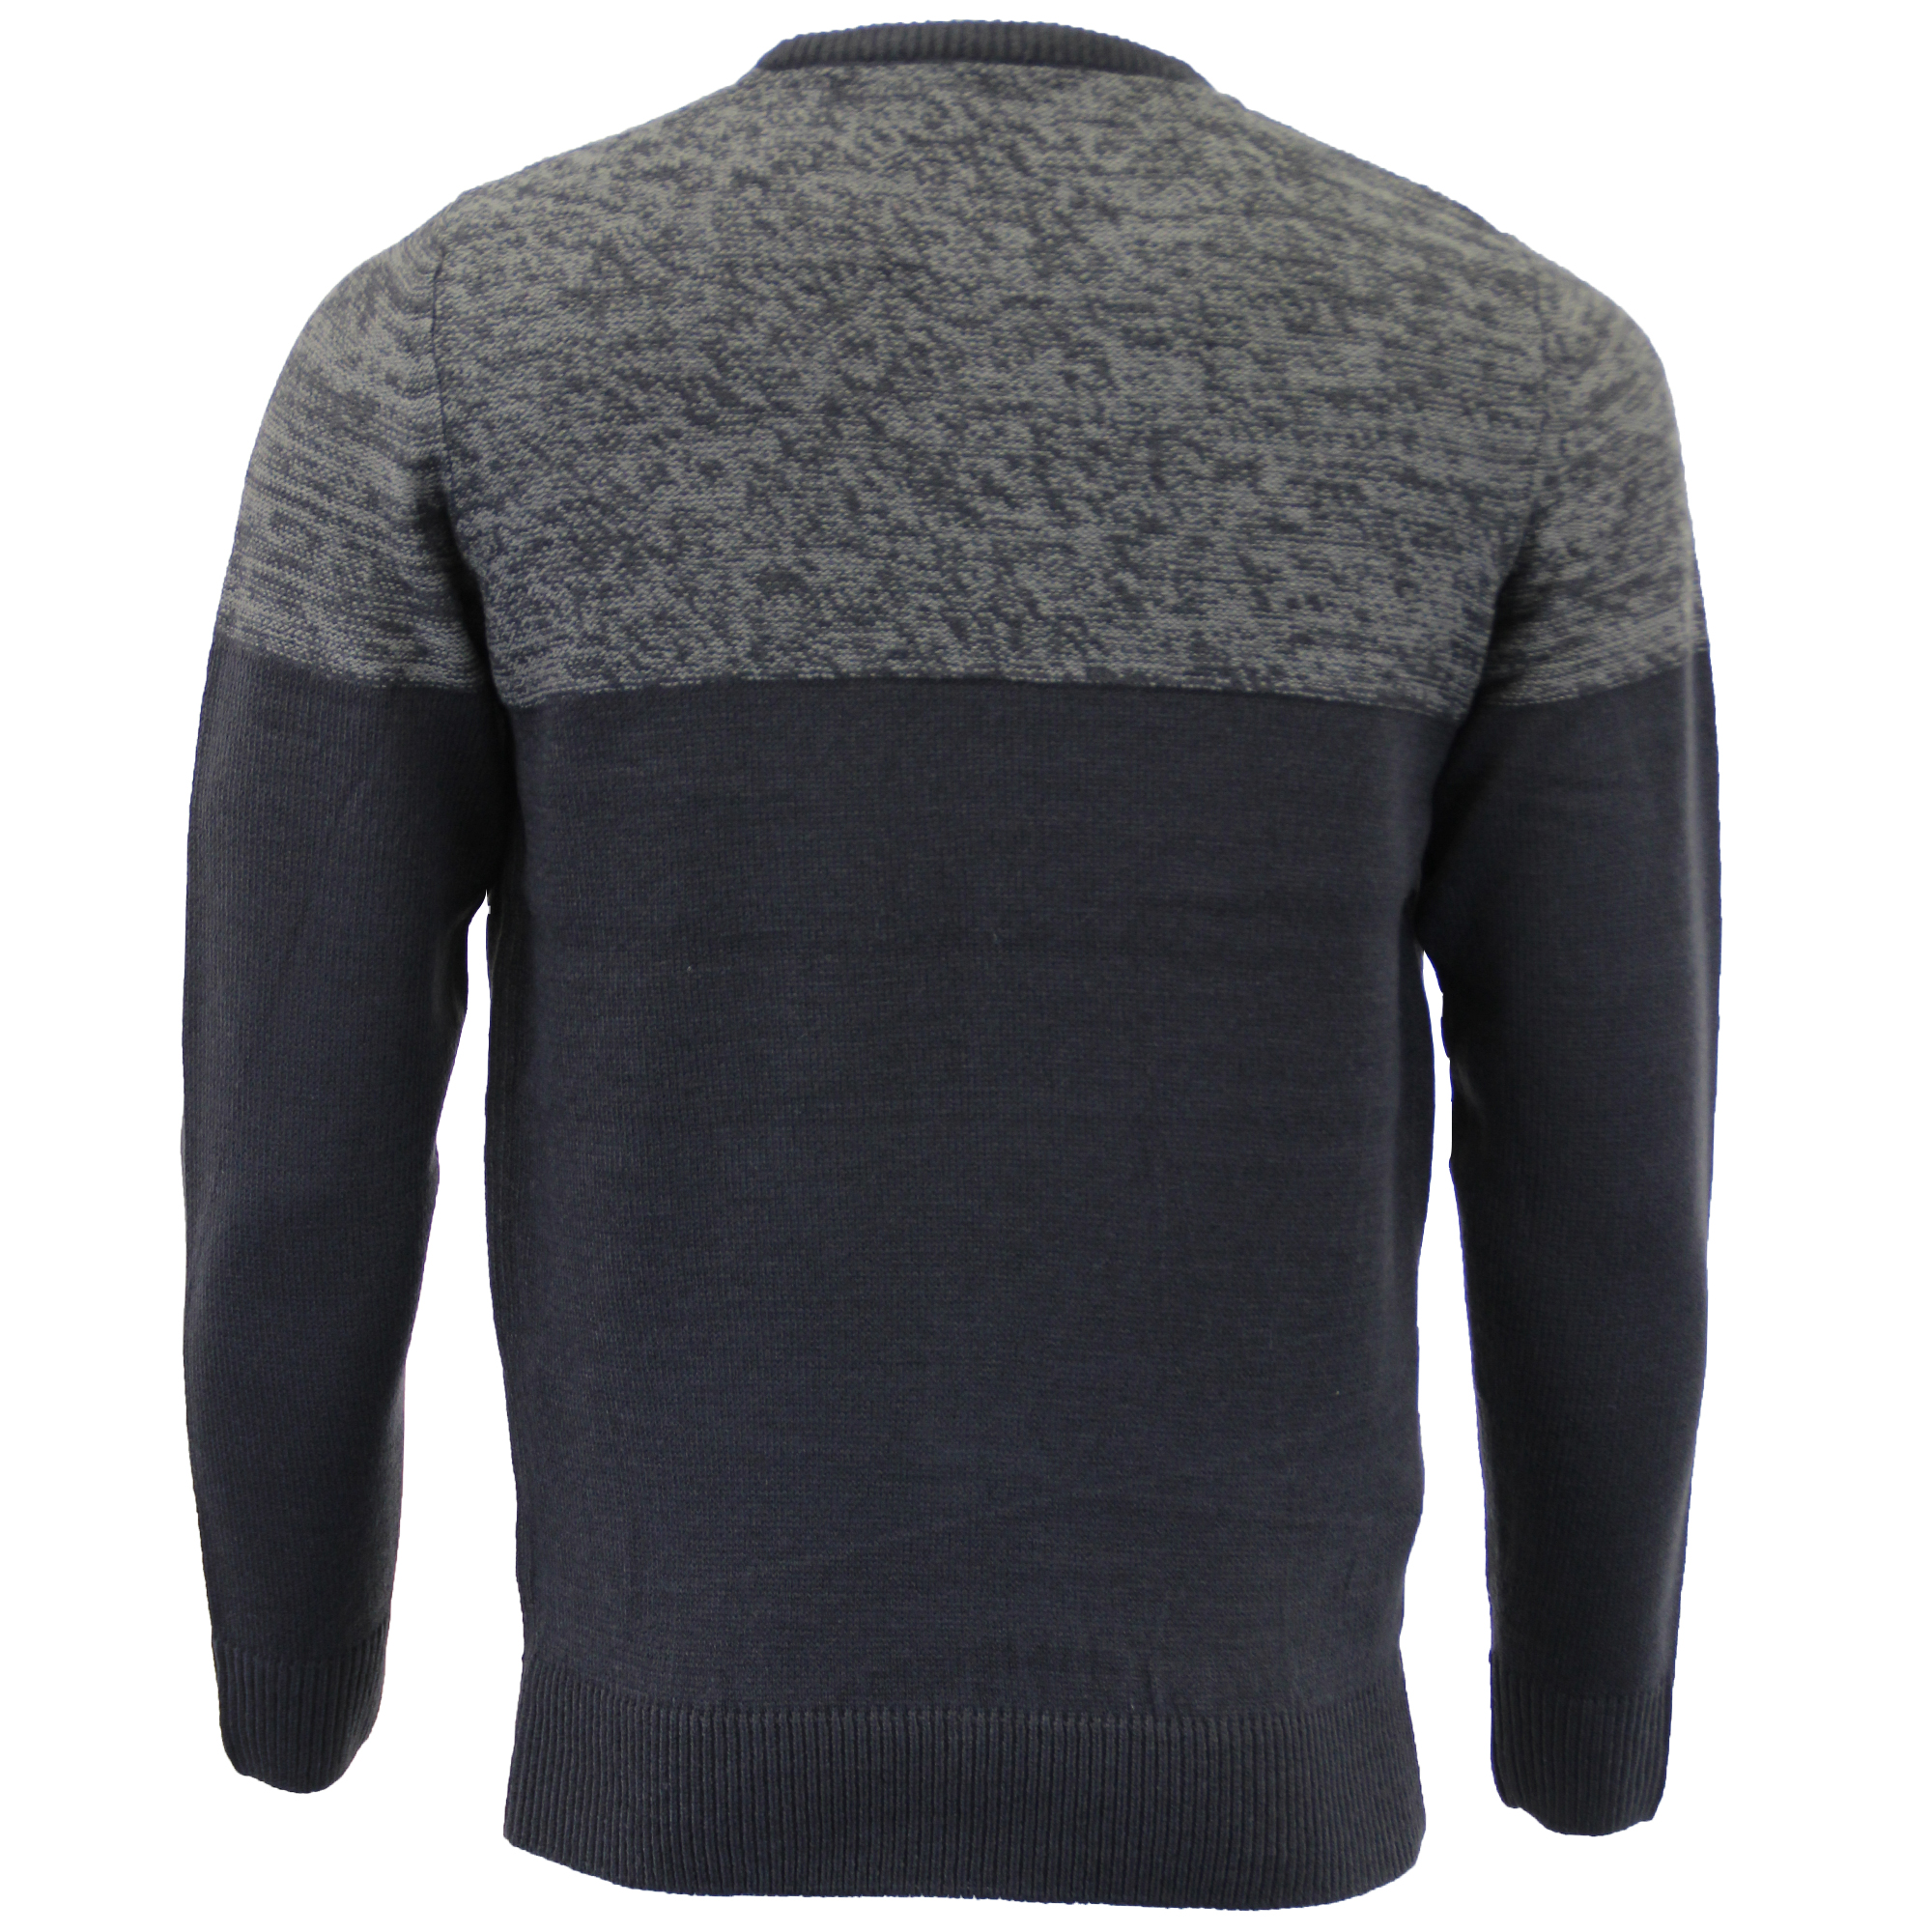 Mens-Knitted-Jumper-Kensington-Eastside-Sweater-Pullover-Top-Acrylic-Winter-New thumbnail 5